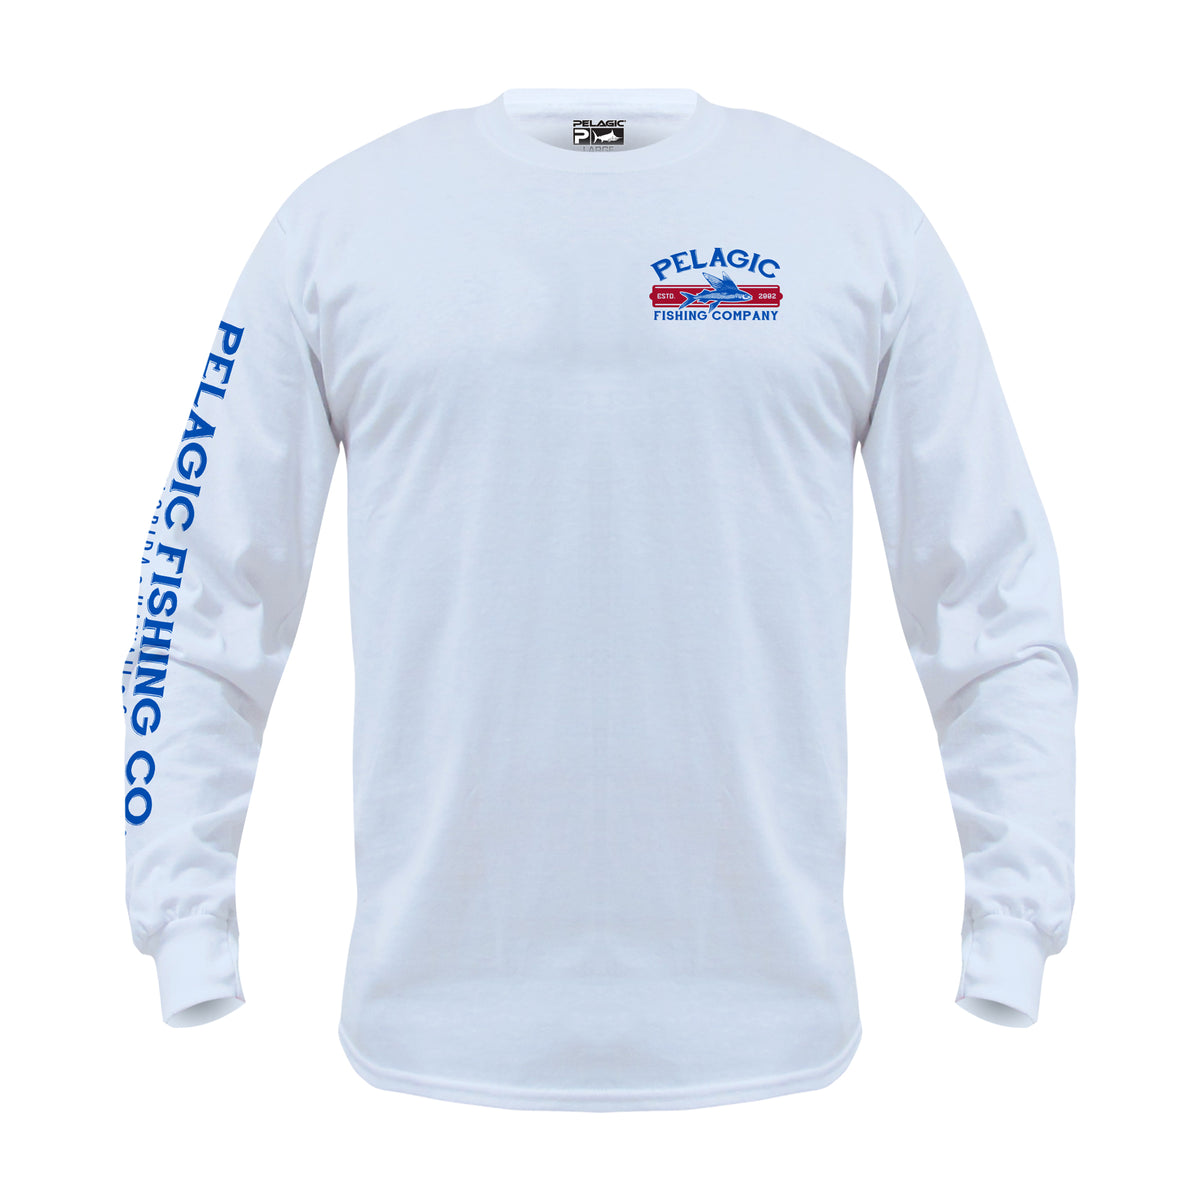 Fish Co. Long Sleeve Fishing T-shirt Big Image - 2